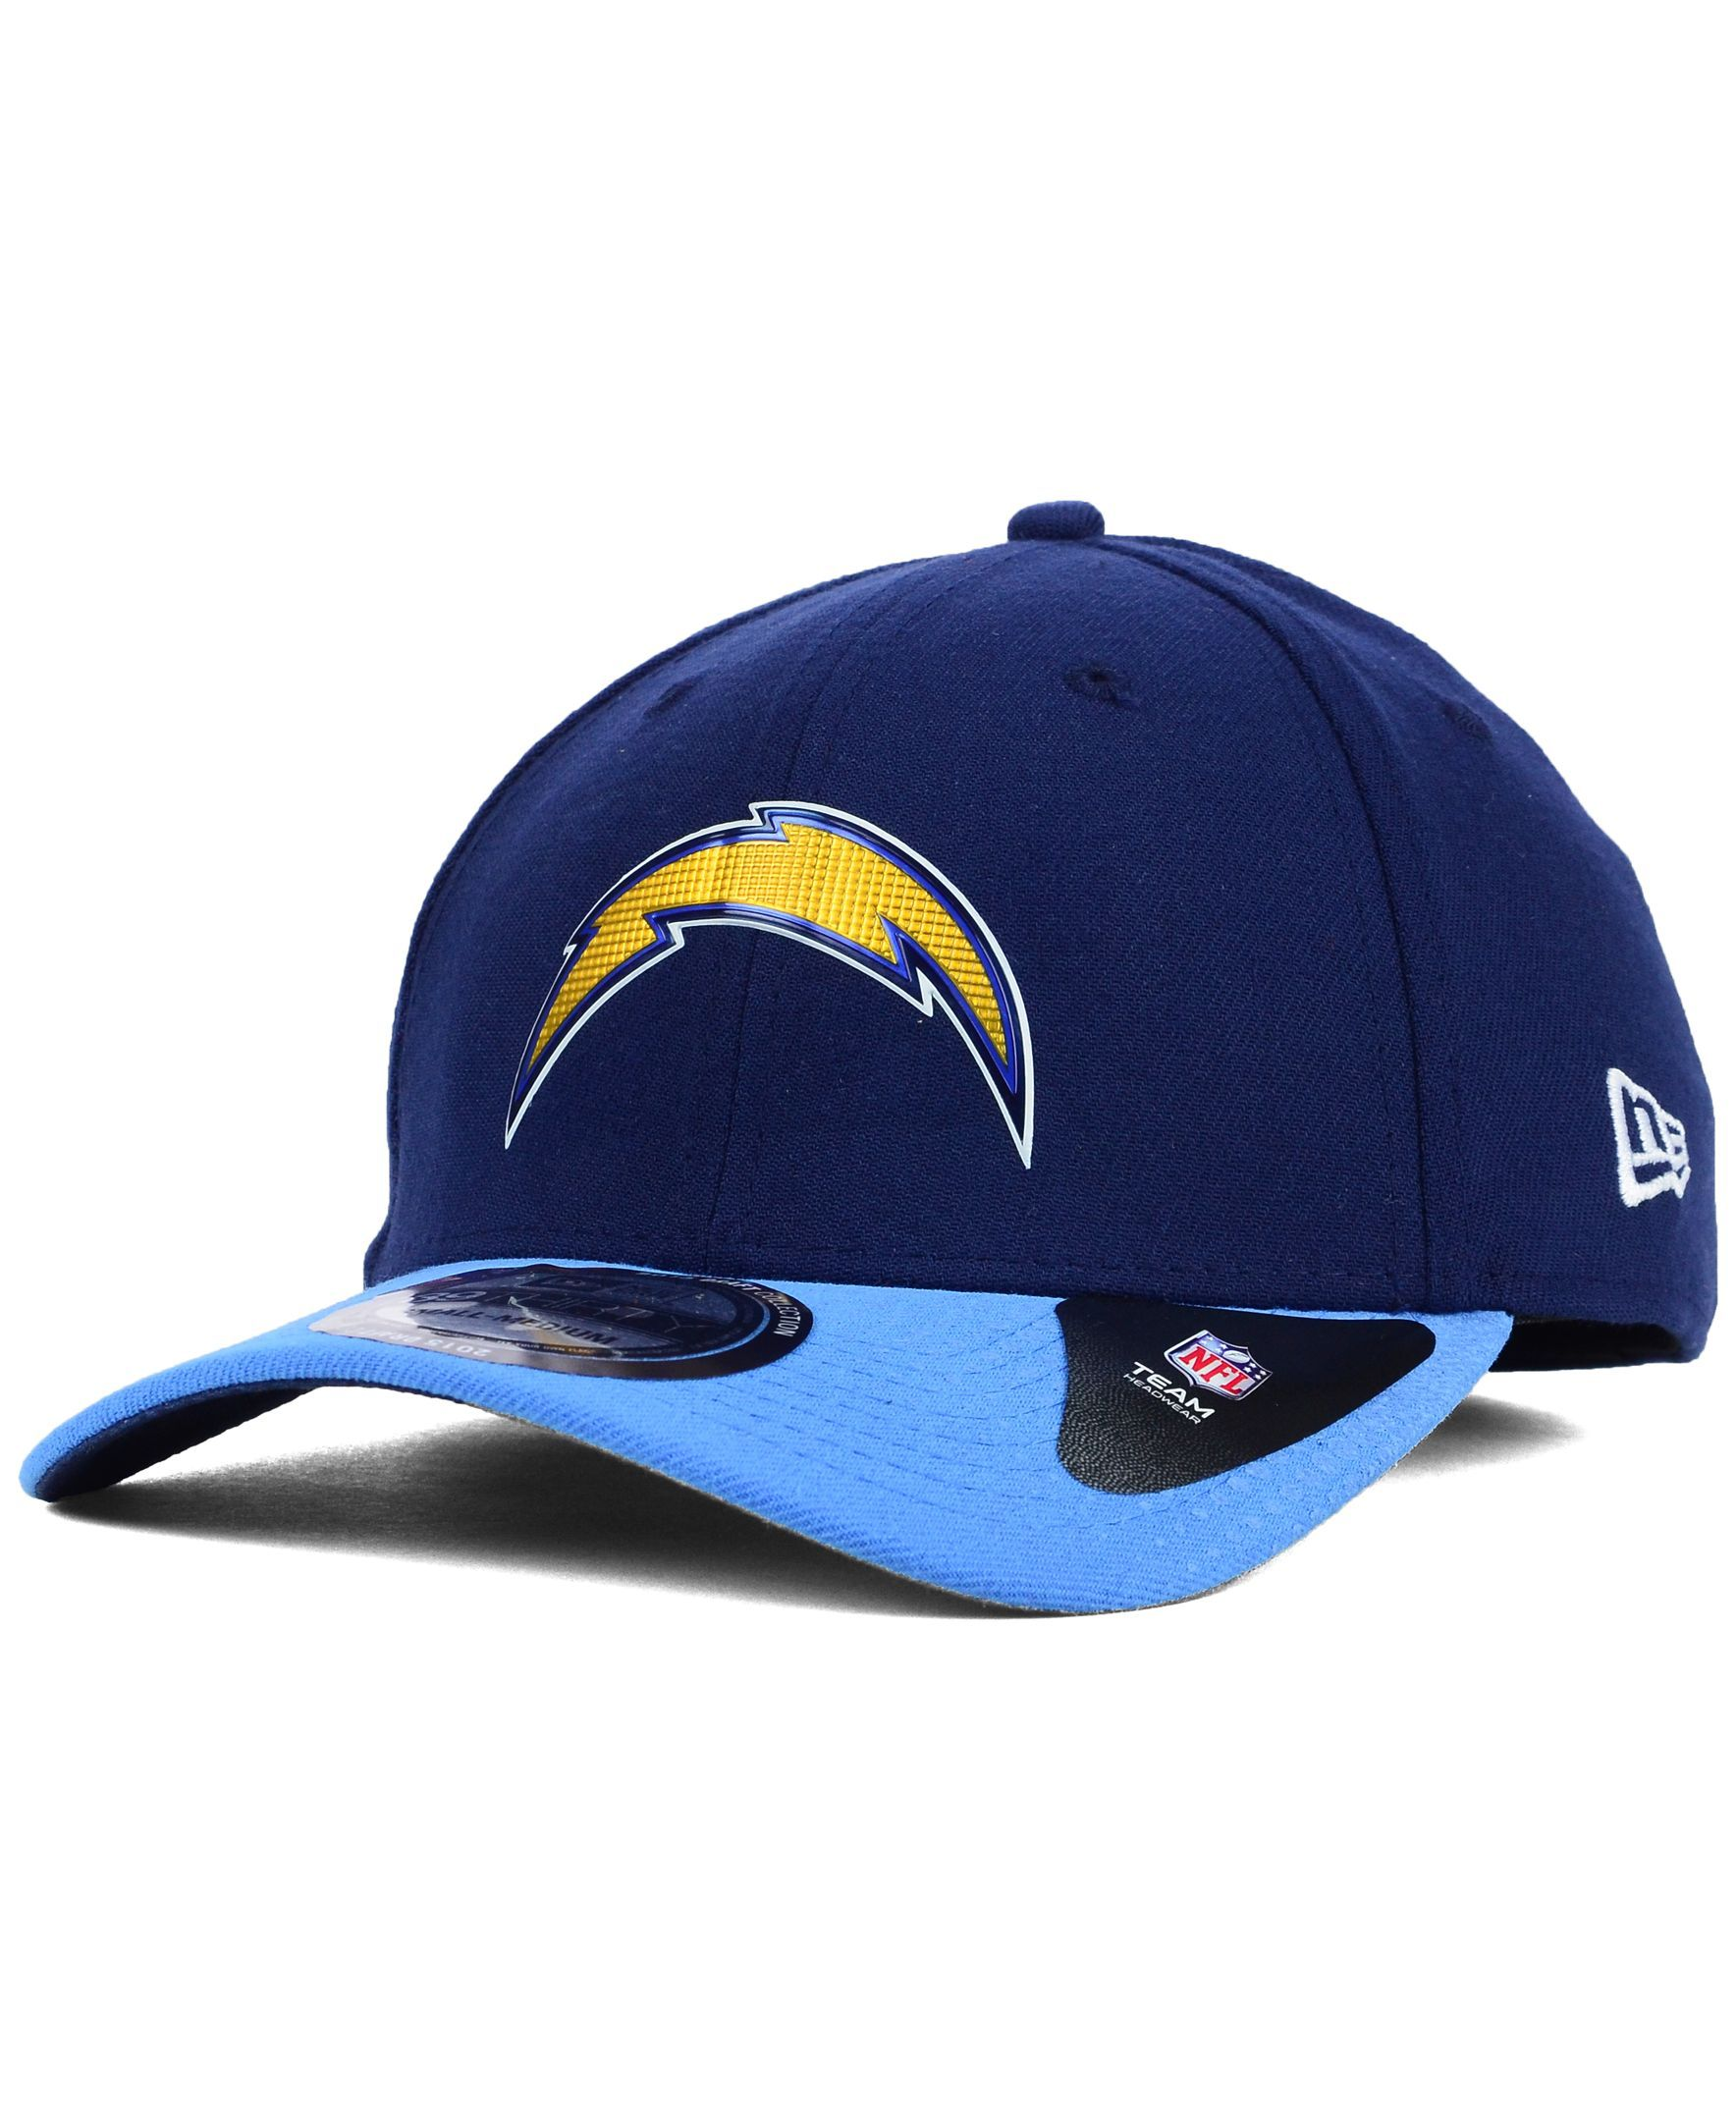 5ee336e6 New Era San Diego Chargers 2015 Nfl Draft 39THIRTY Cap | my man & me ...